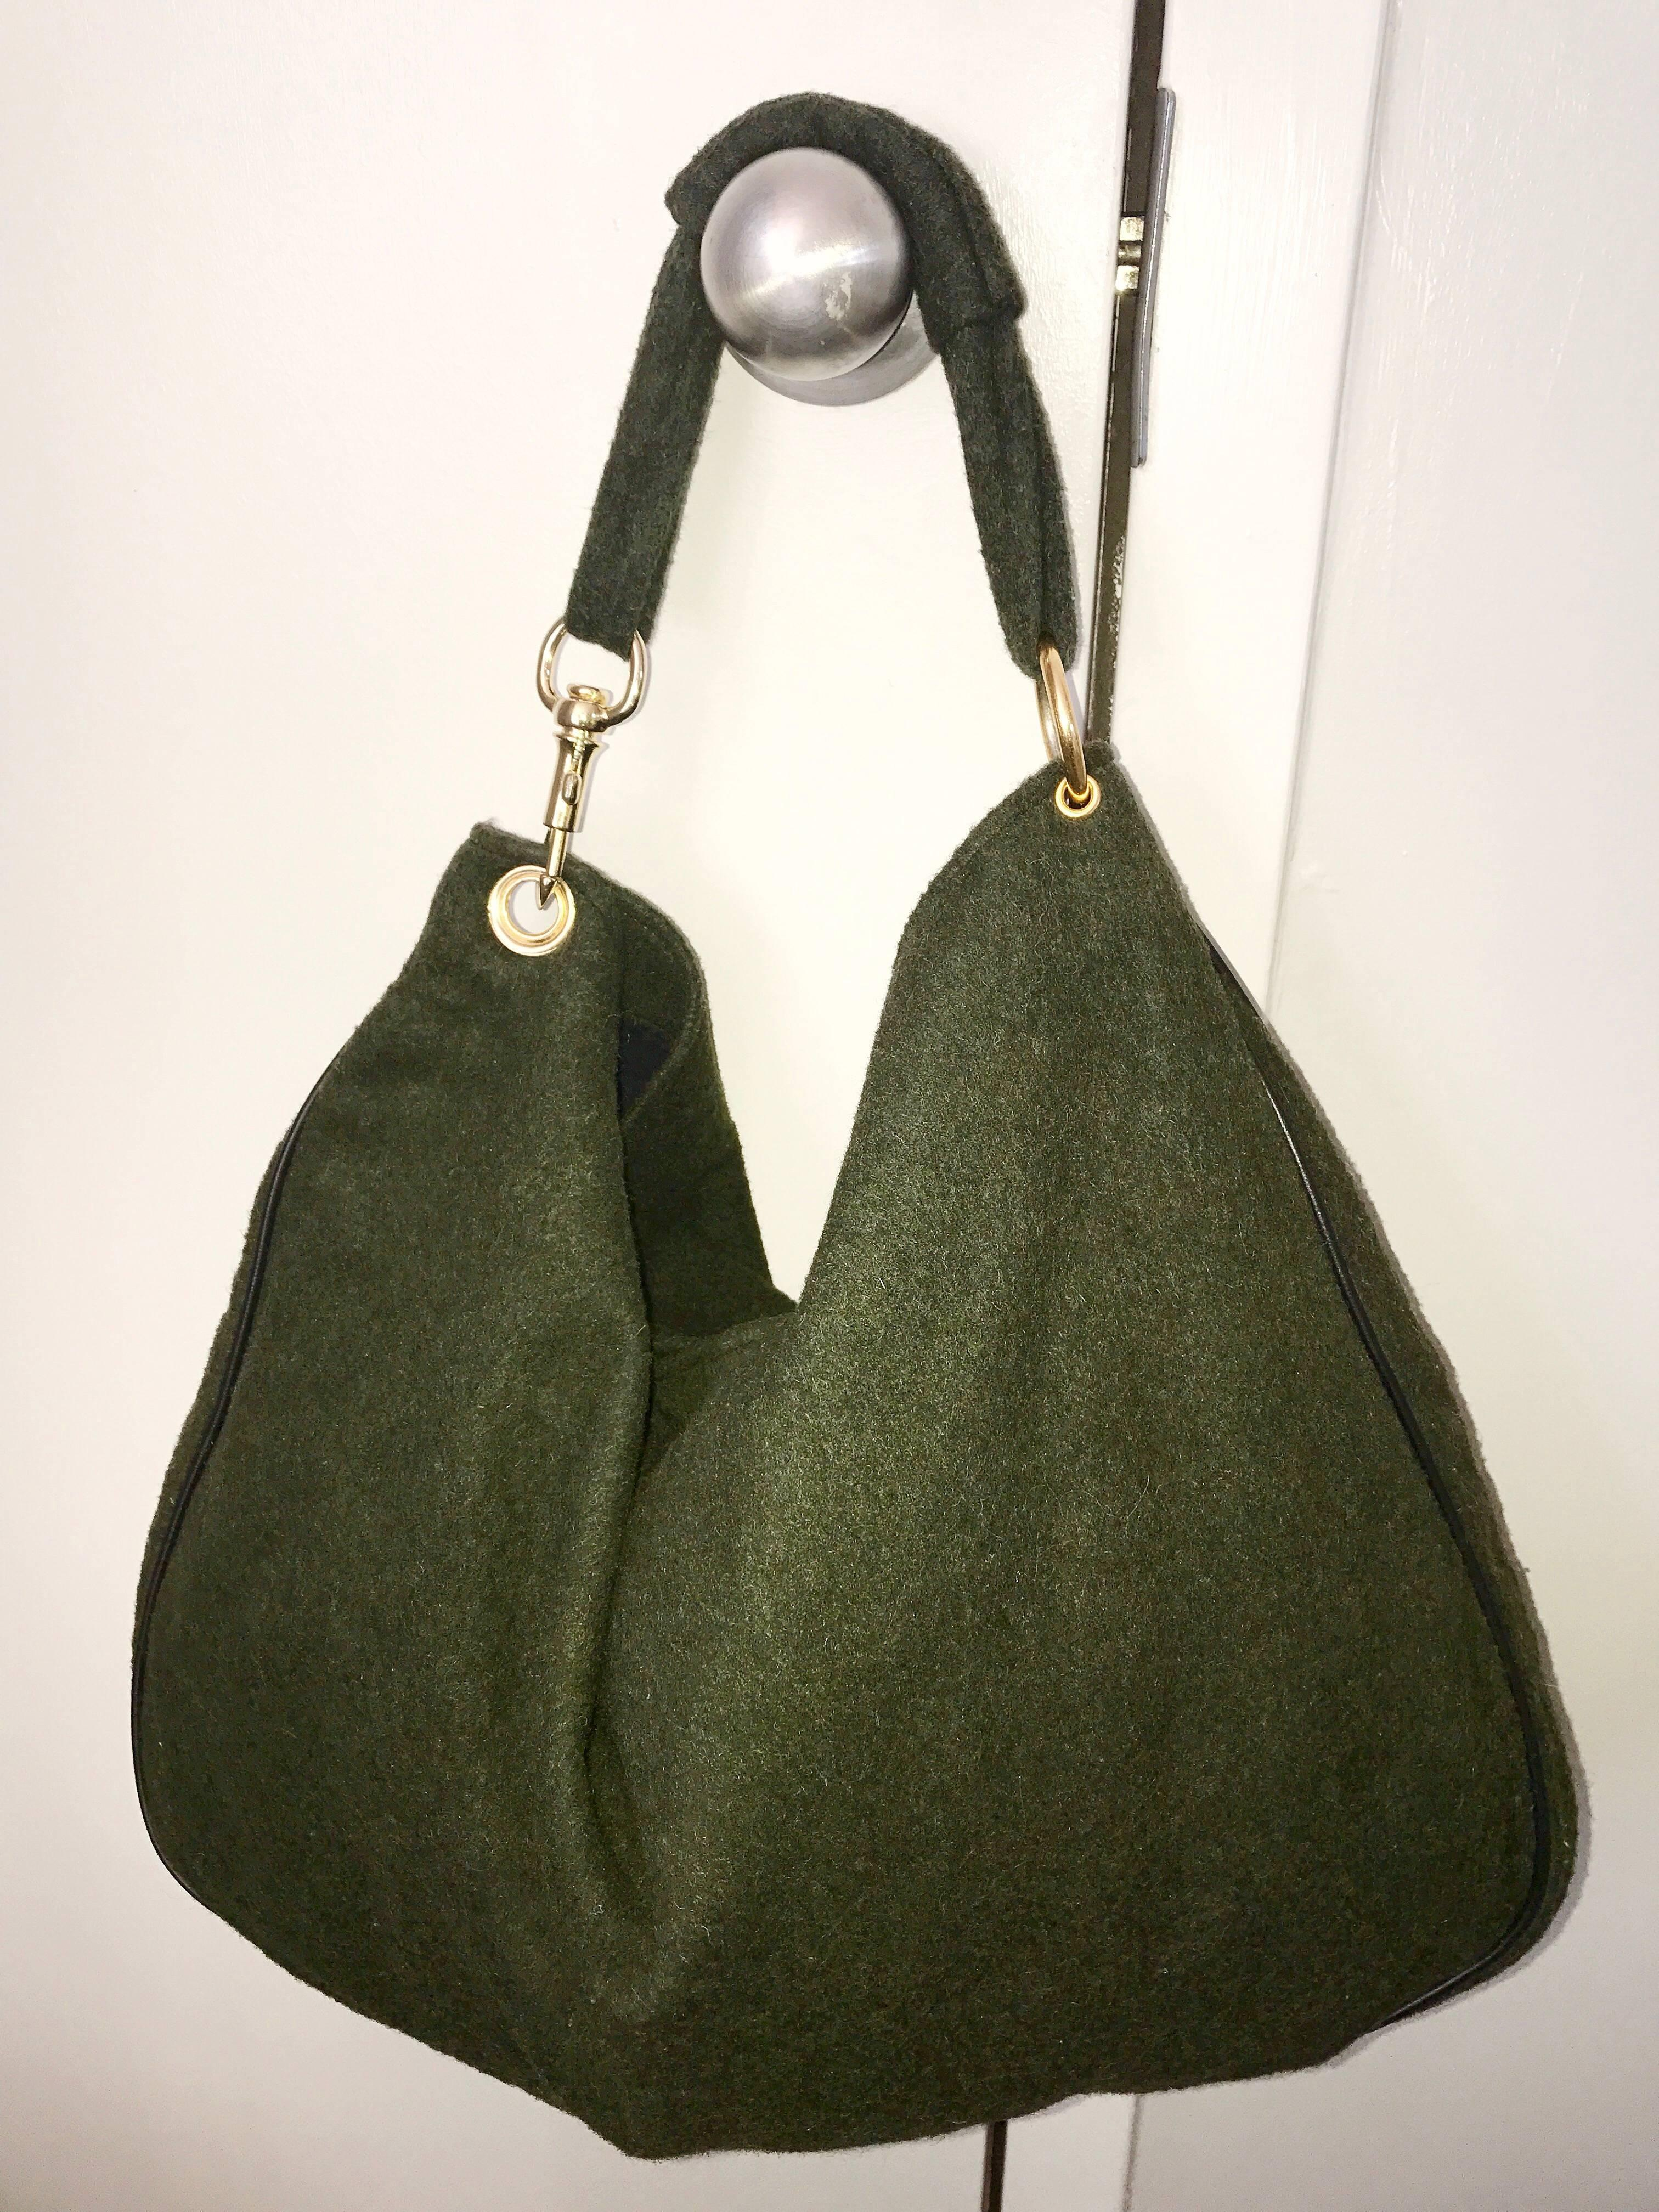 bc15a71570786d 1970s Joseph Magnin Hunter Green Made in Italy Wool XL Hobo Vintage Shoulder  Bag For Sale at 1stdibs